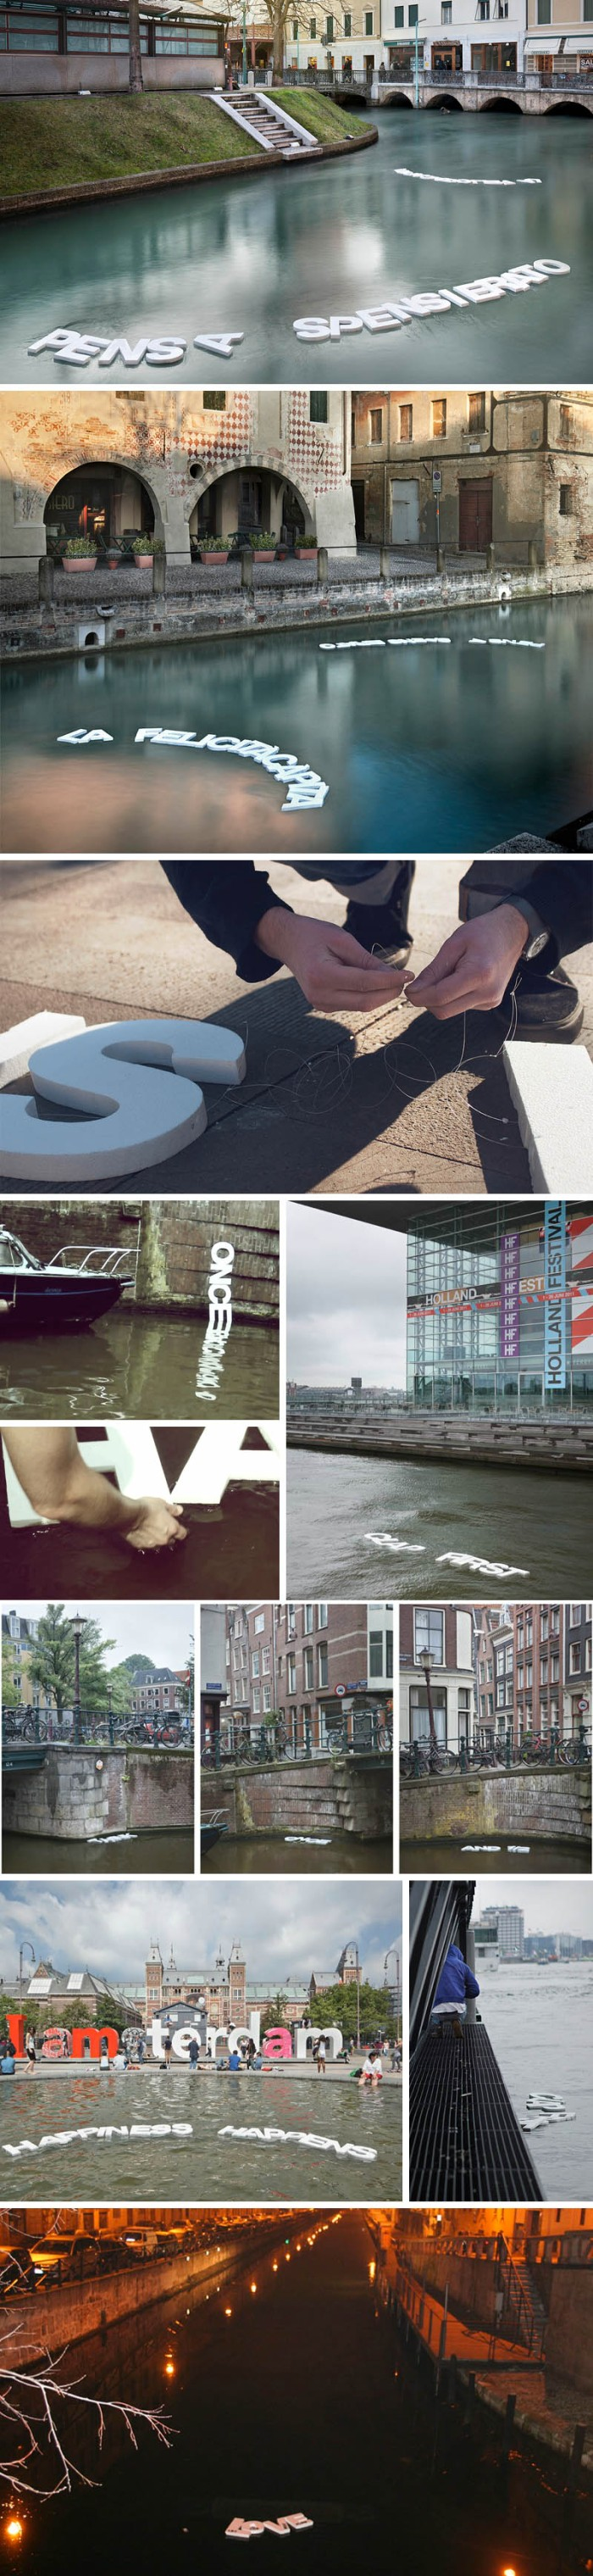 Typography, Typographic installation in Milan, Amsterdam, Words floating on water, Guildor, Street art